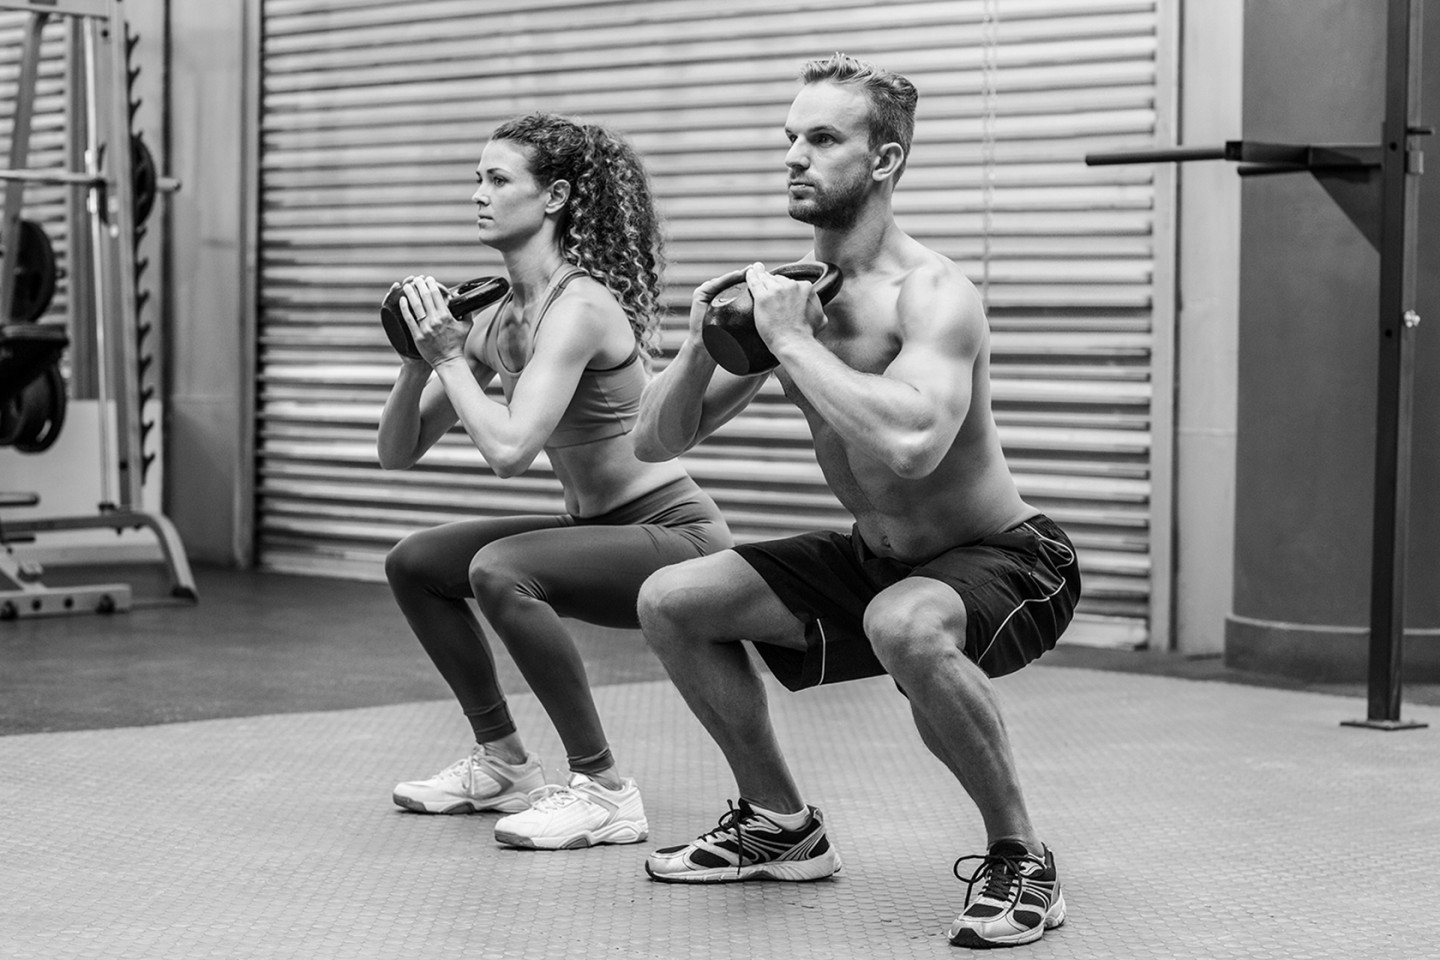 Onnit Academy Workout of The Day #26 - Kettlebell Workout